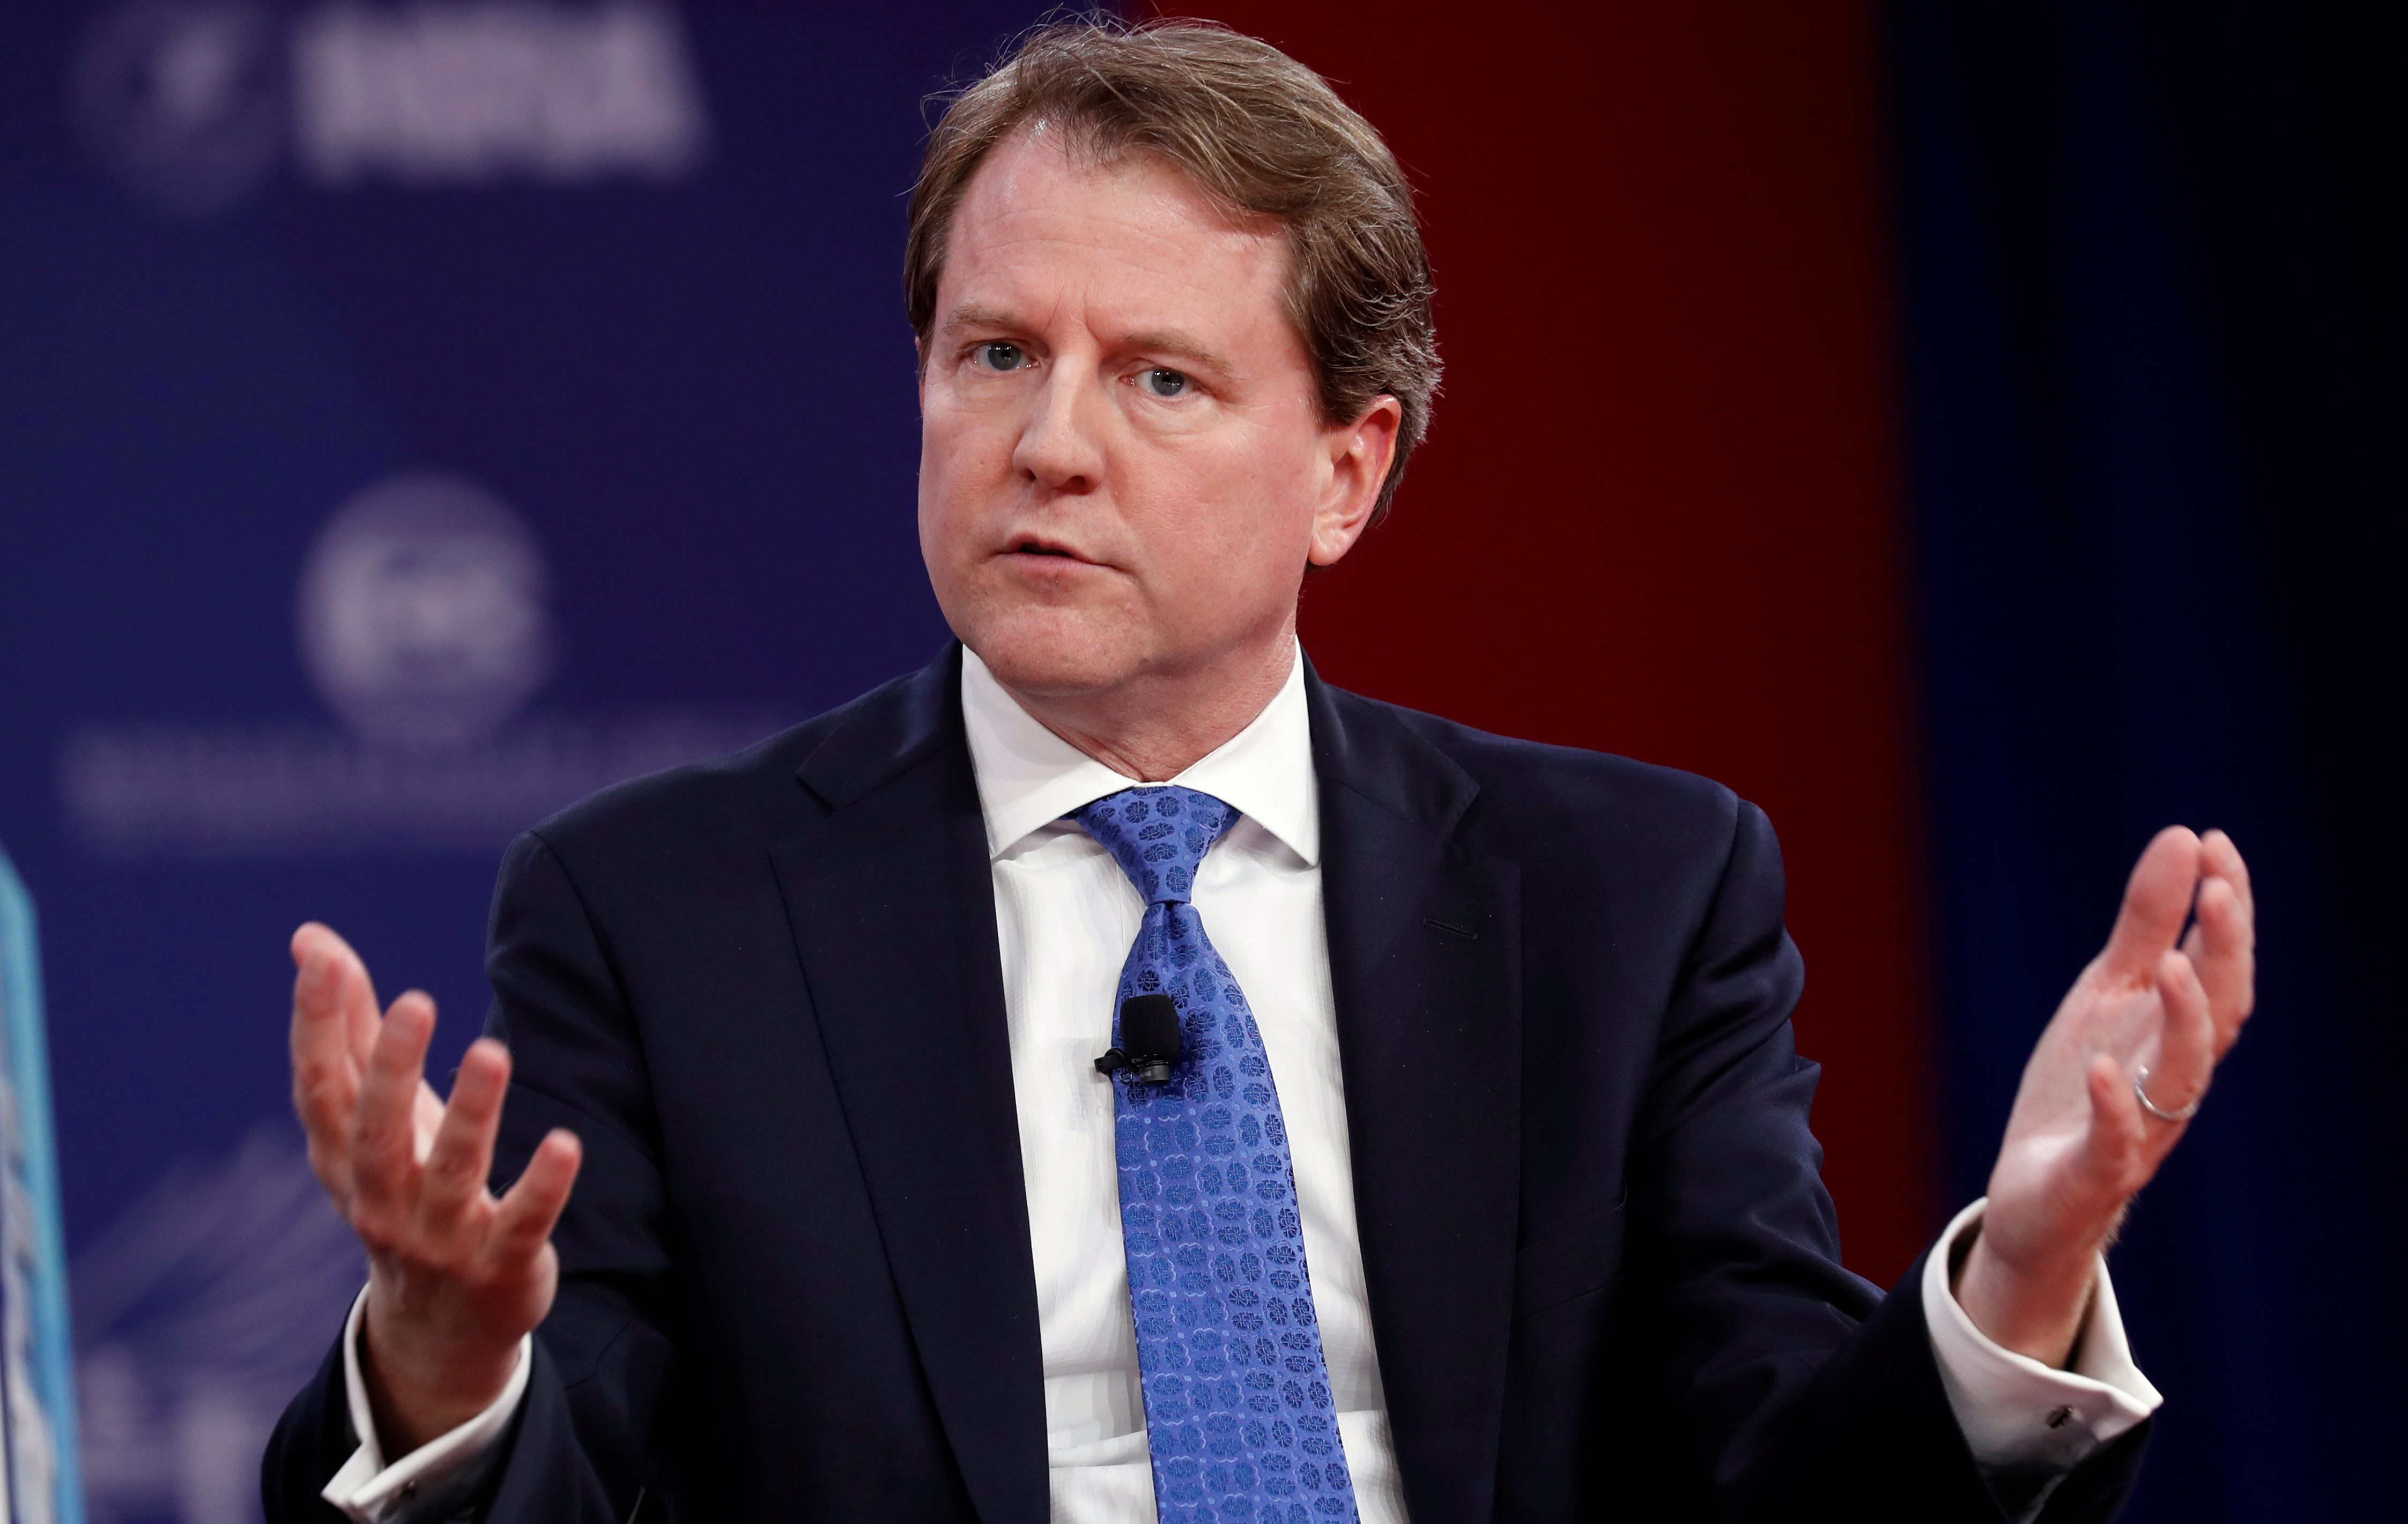 White House Counsel Don McGahn speaks at the Conservative Political Action Conference (CPAC) at National Harbor, Maryland,  U.S., February 22, 2018.  REUTERS/Kevin Lamarque